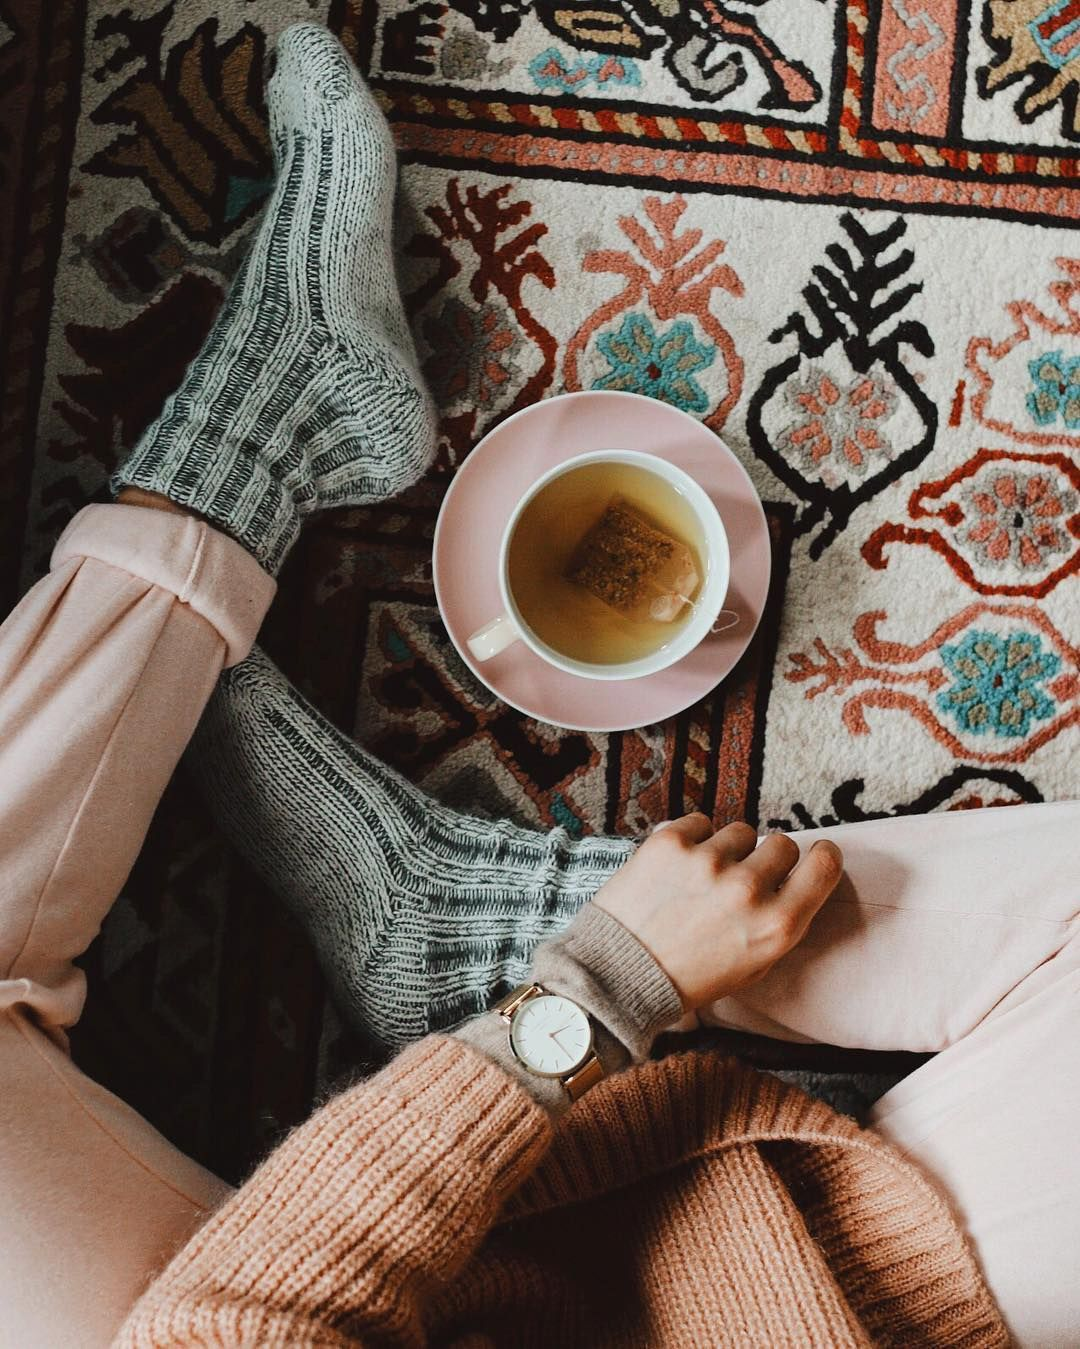 5e35a86506c9 aydriananeapolitan ✶ Cozy Aesthetic, Tomboy Aesthetic, Warm And Cozy,  Hygge, Lazy Days